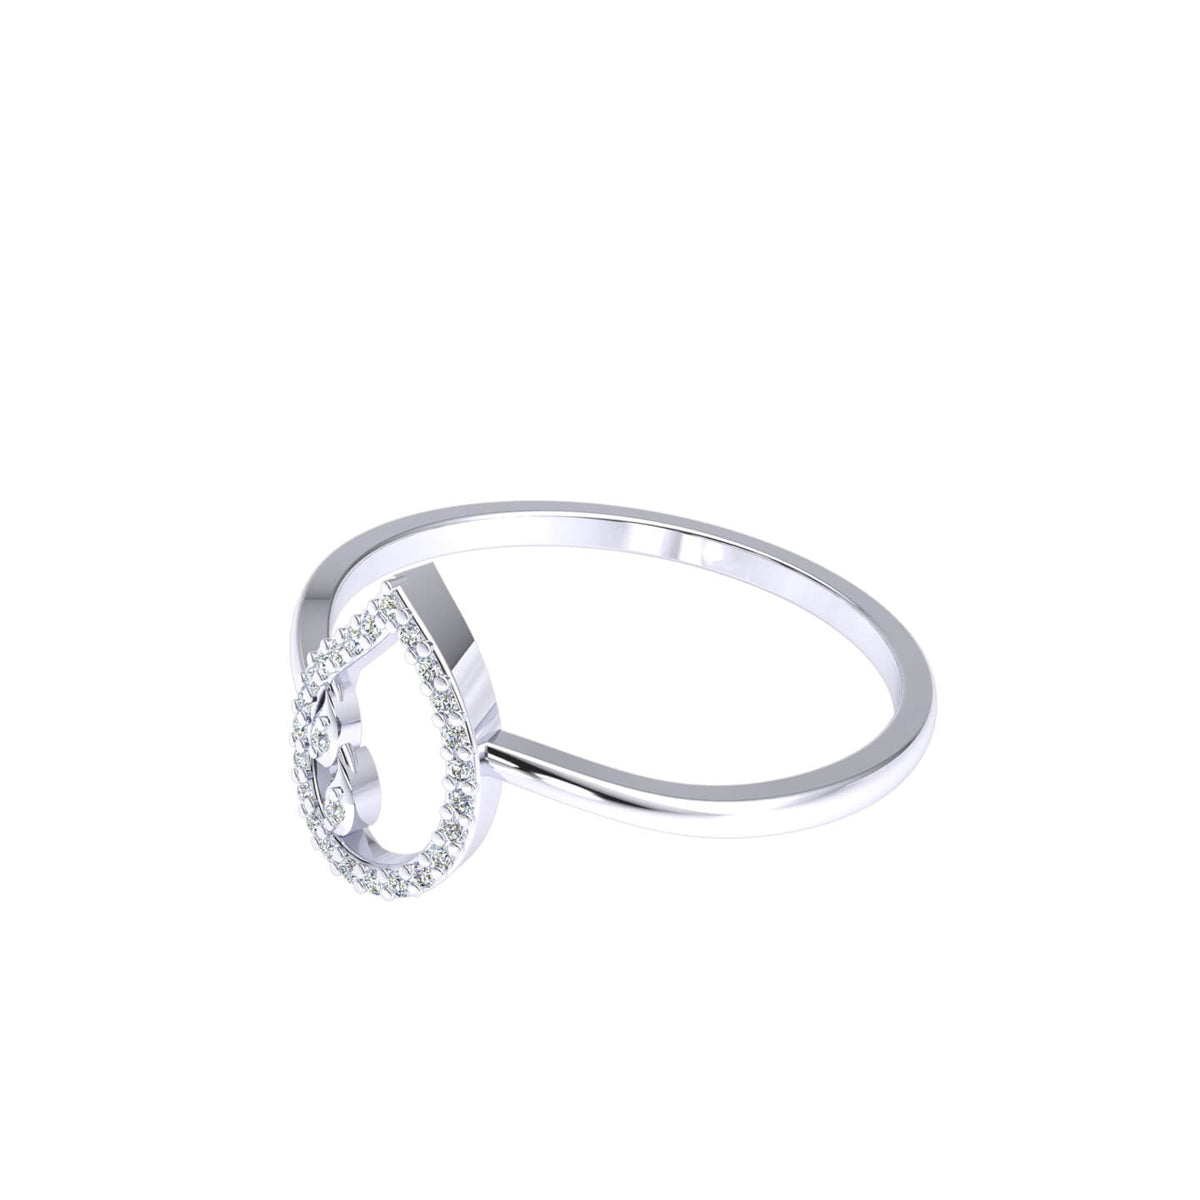 0.10 Ct Drop Women's Pave Round GH I1-I2 Diamond Fancy Ring 925 Silver